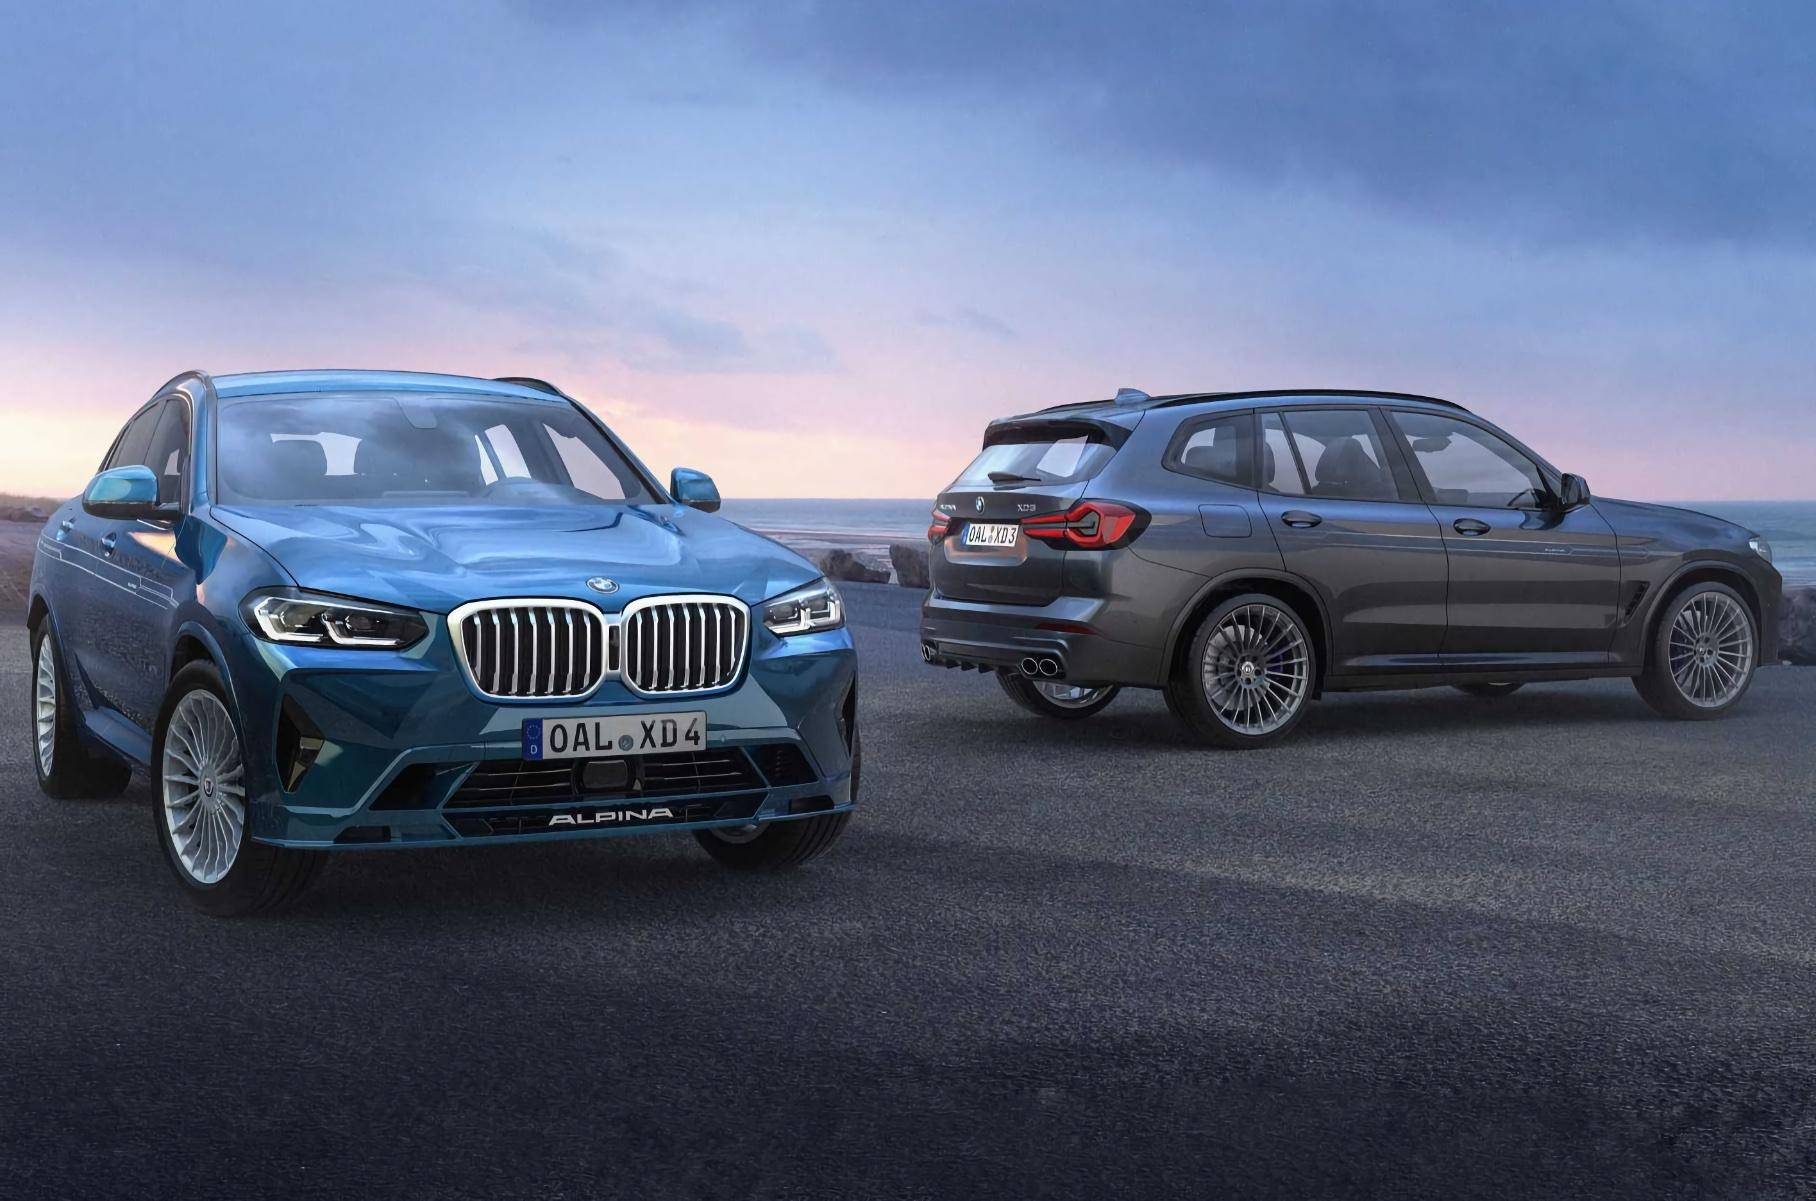 Mere days after the premiere of the refreshed BMW X3 (in the video) and X4, Alpina Automobiles rolled out its own renditions of the diesel SUVs. Both the XD3 and XD4 arrive with design improvements, new center console and HVAC, and the latest iDrive 7 infotainment.